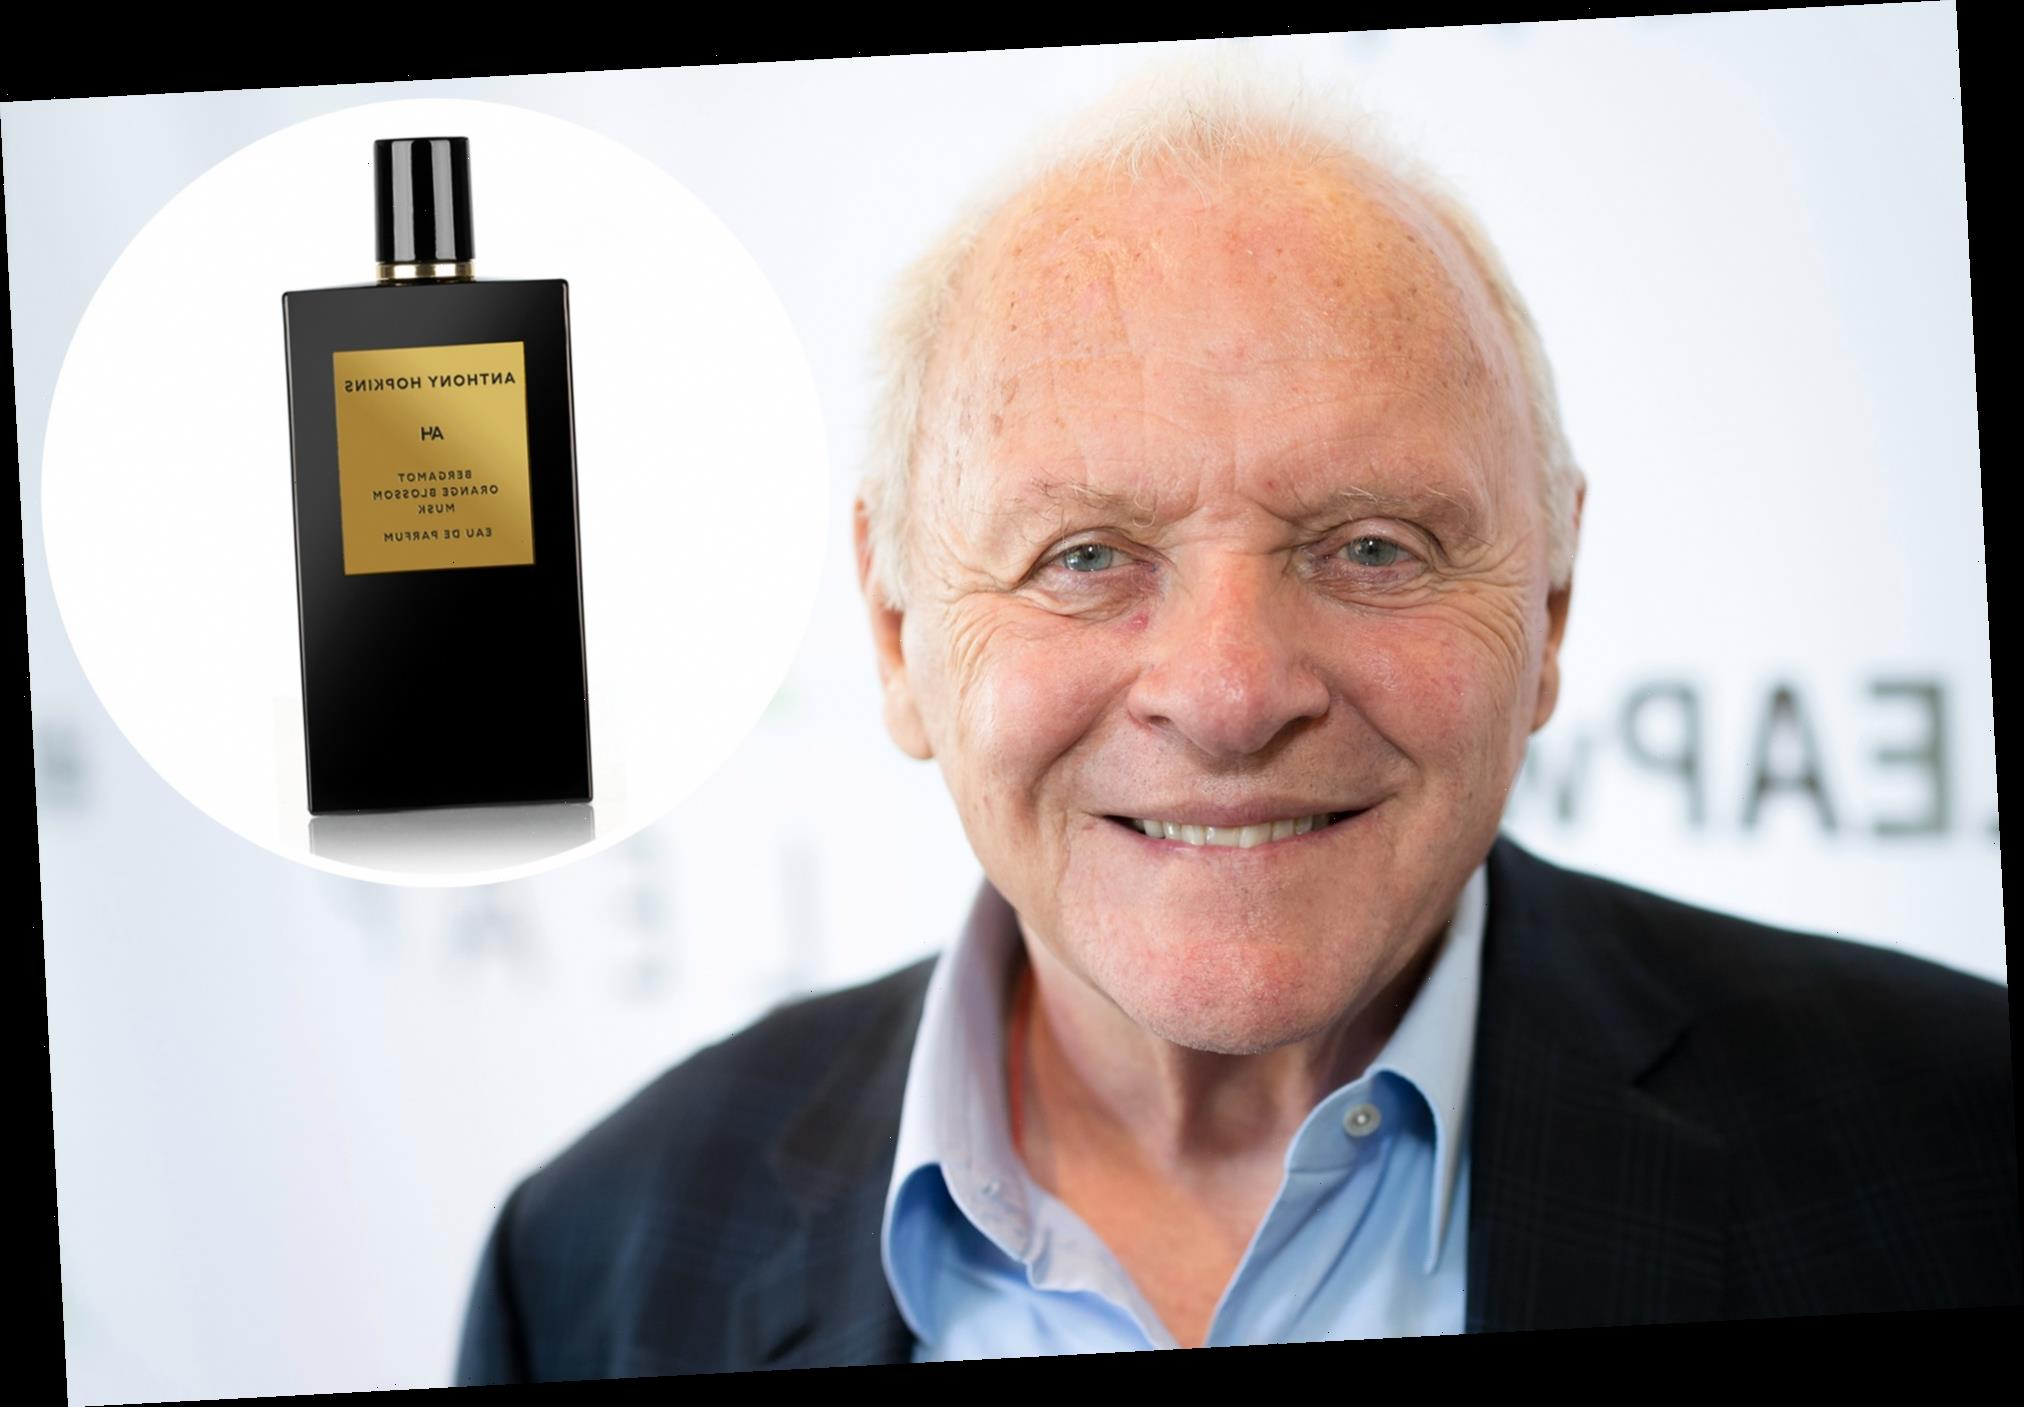 Now's your chance to smell like Sir Anthony Hopkins